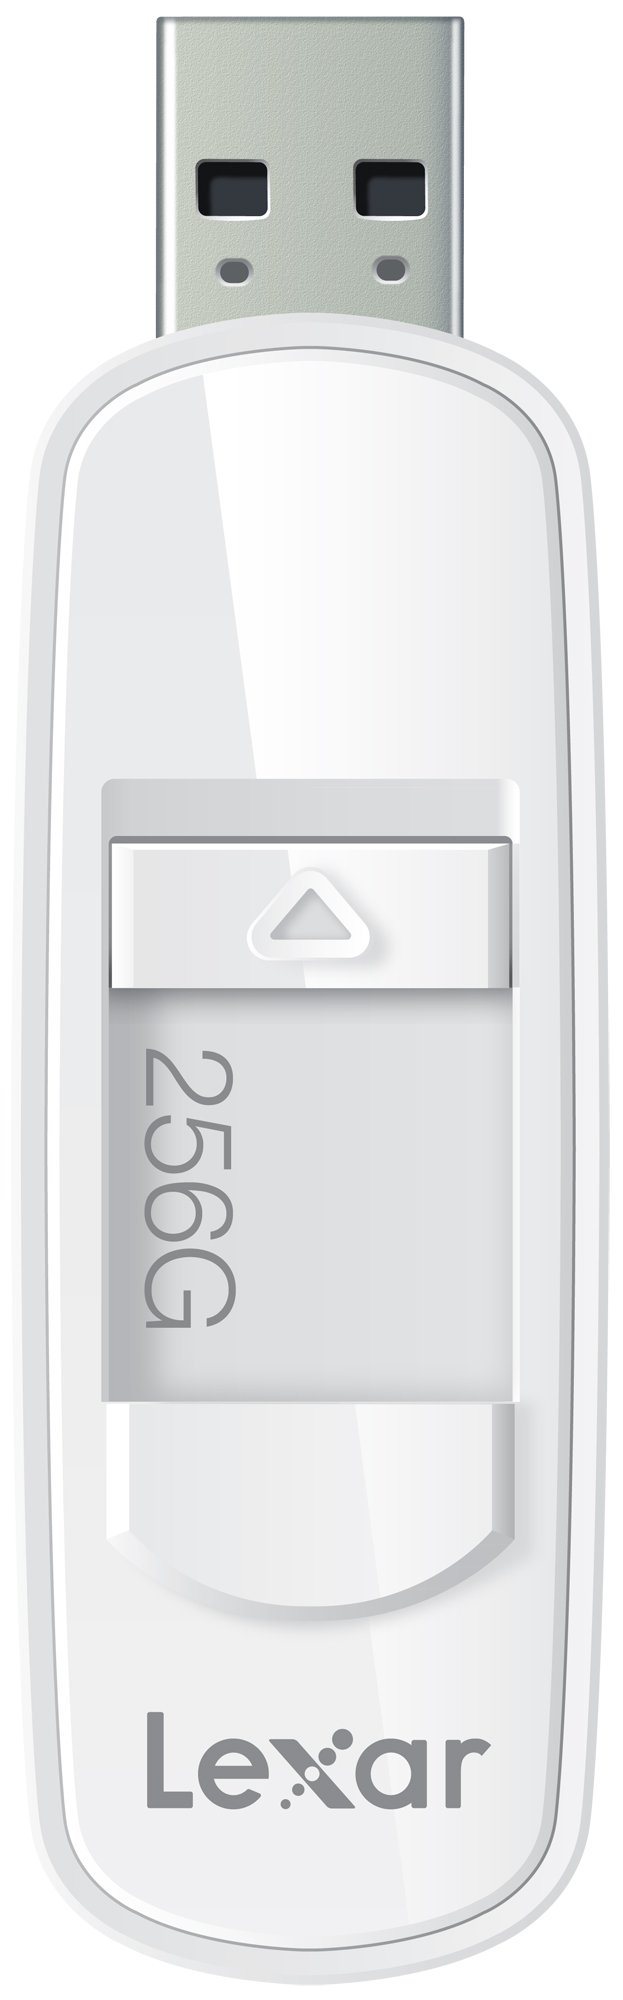 Lexar JumpDrive S75 256GB USB 3.0 Flash Drive - LJDS75-256ABNL (White)